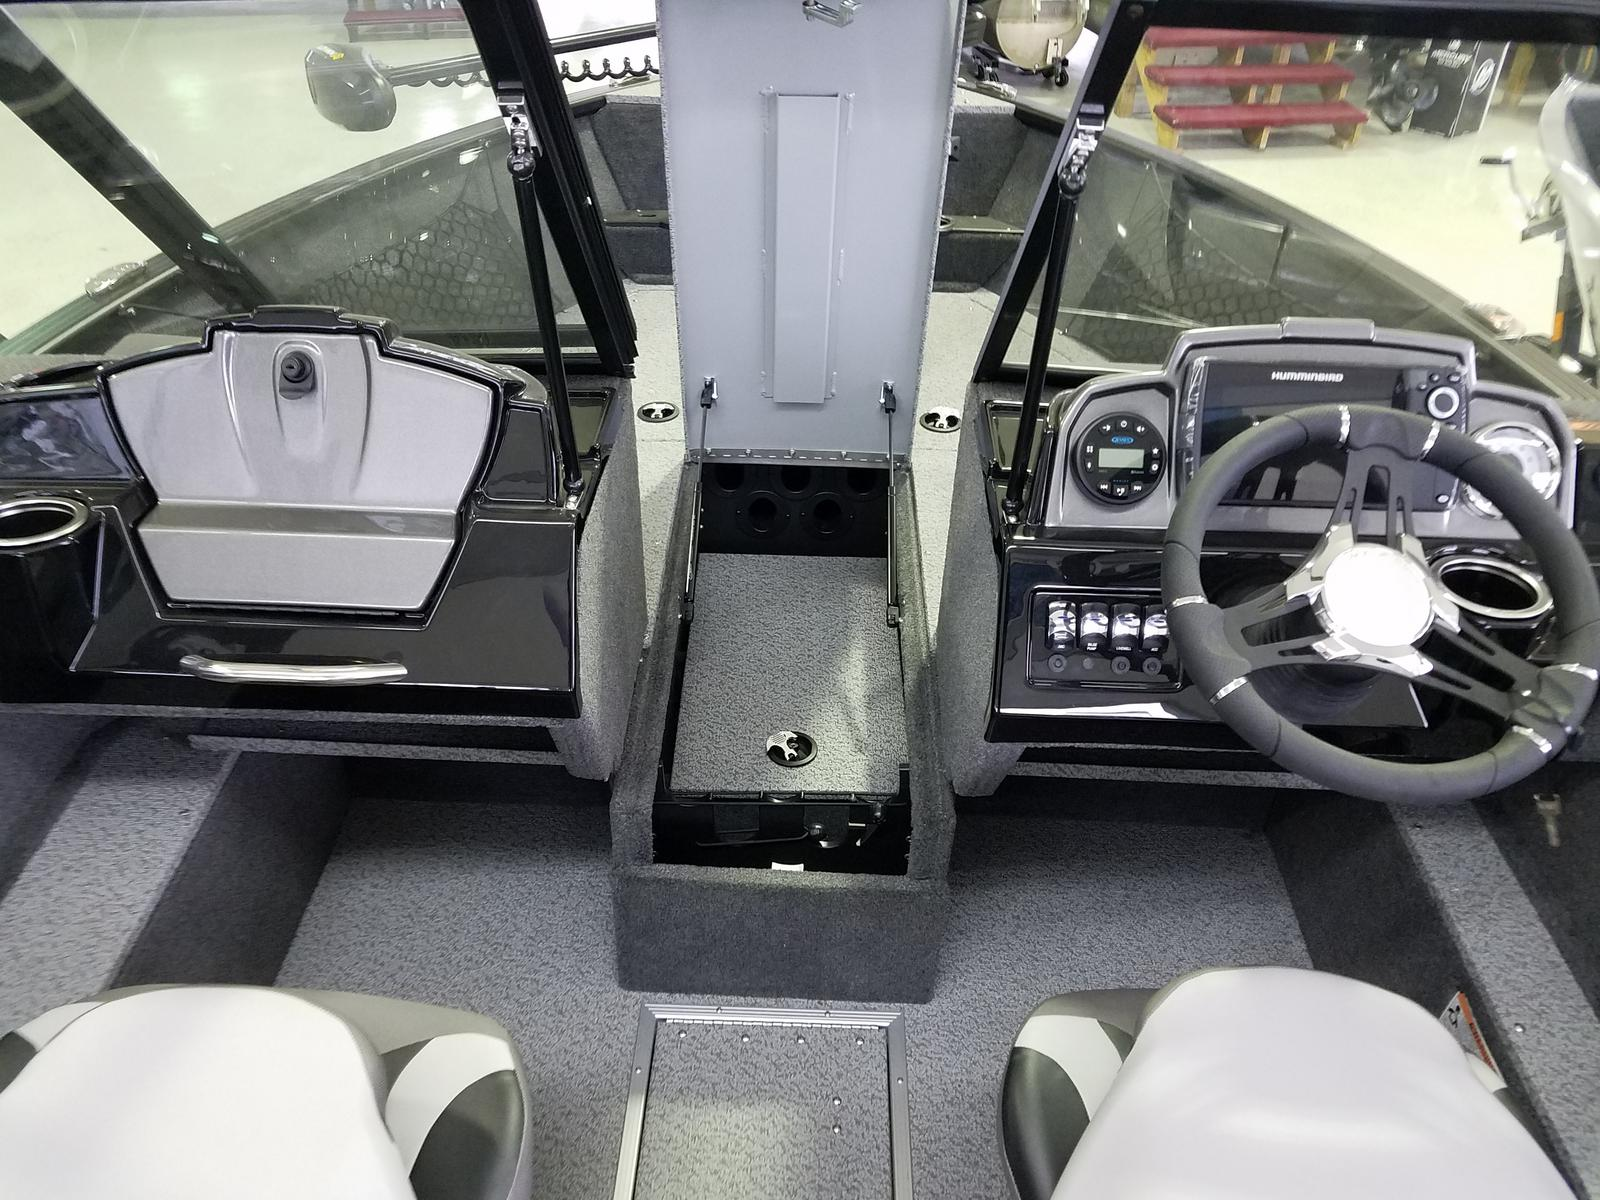 2021 Starweld boat for sale, model of the boat is Flex Pro 17 DC & Image # 6 of 7